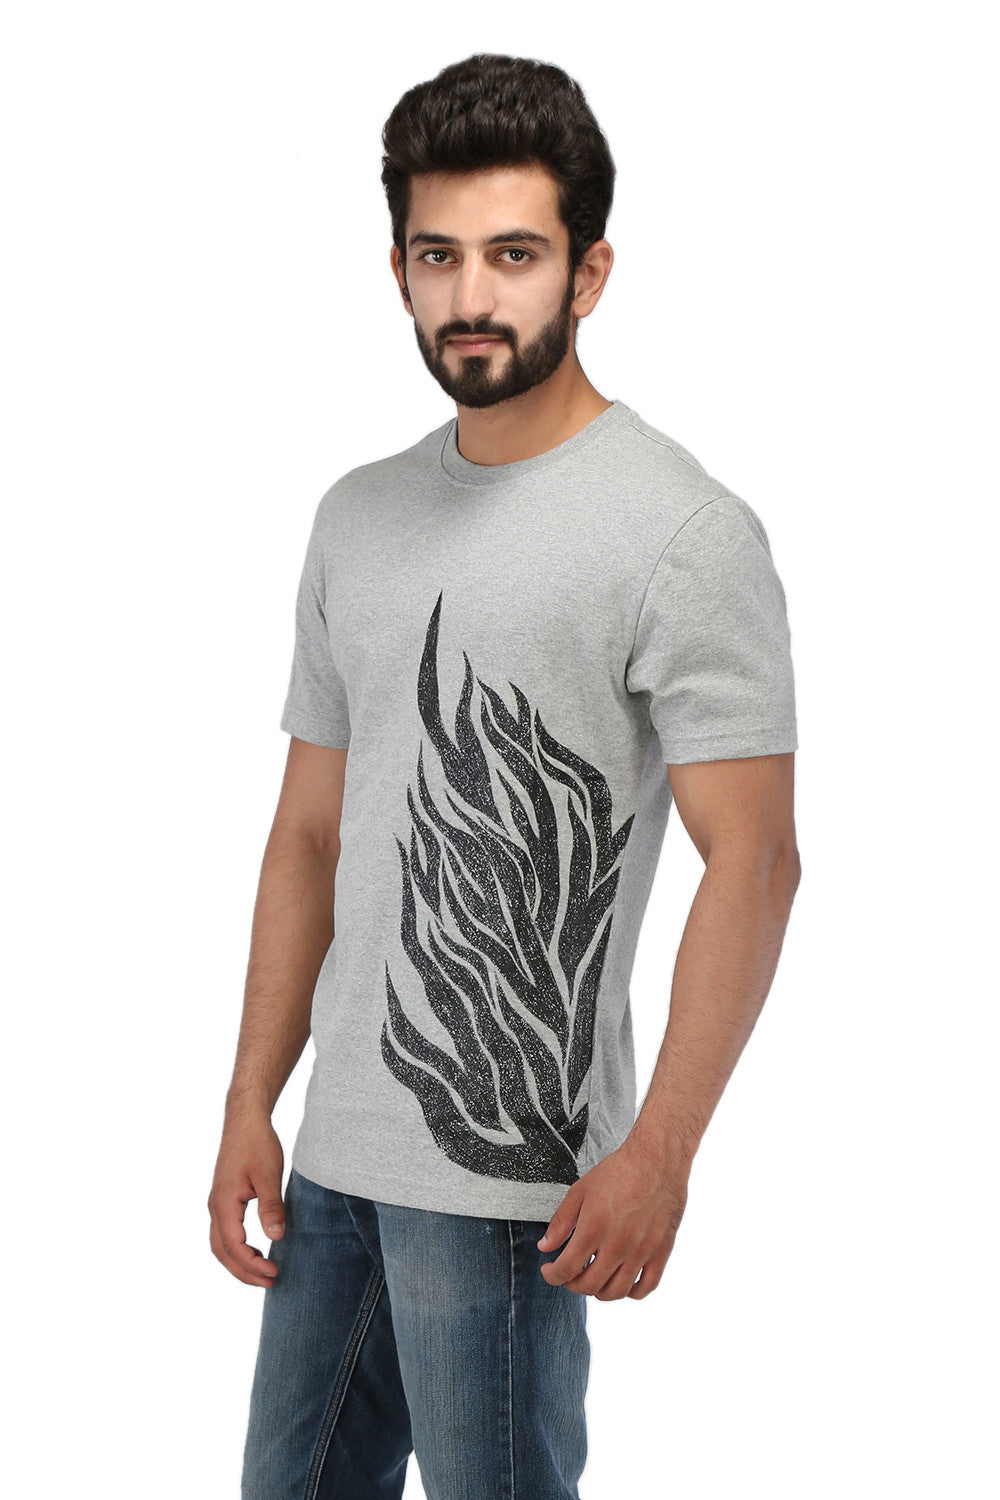 Hand-painted Flames of Passion Grey T-shirt - Rang Rage  - 3